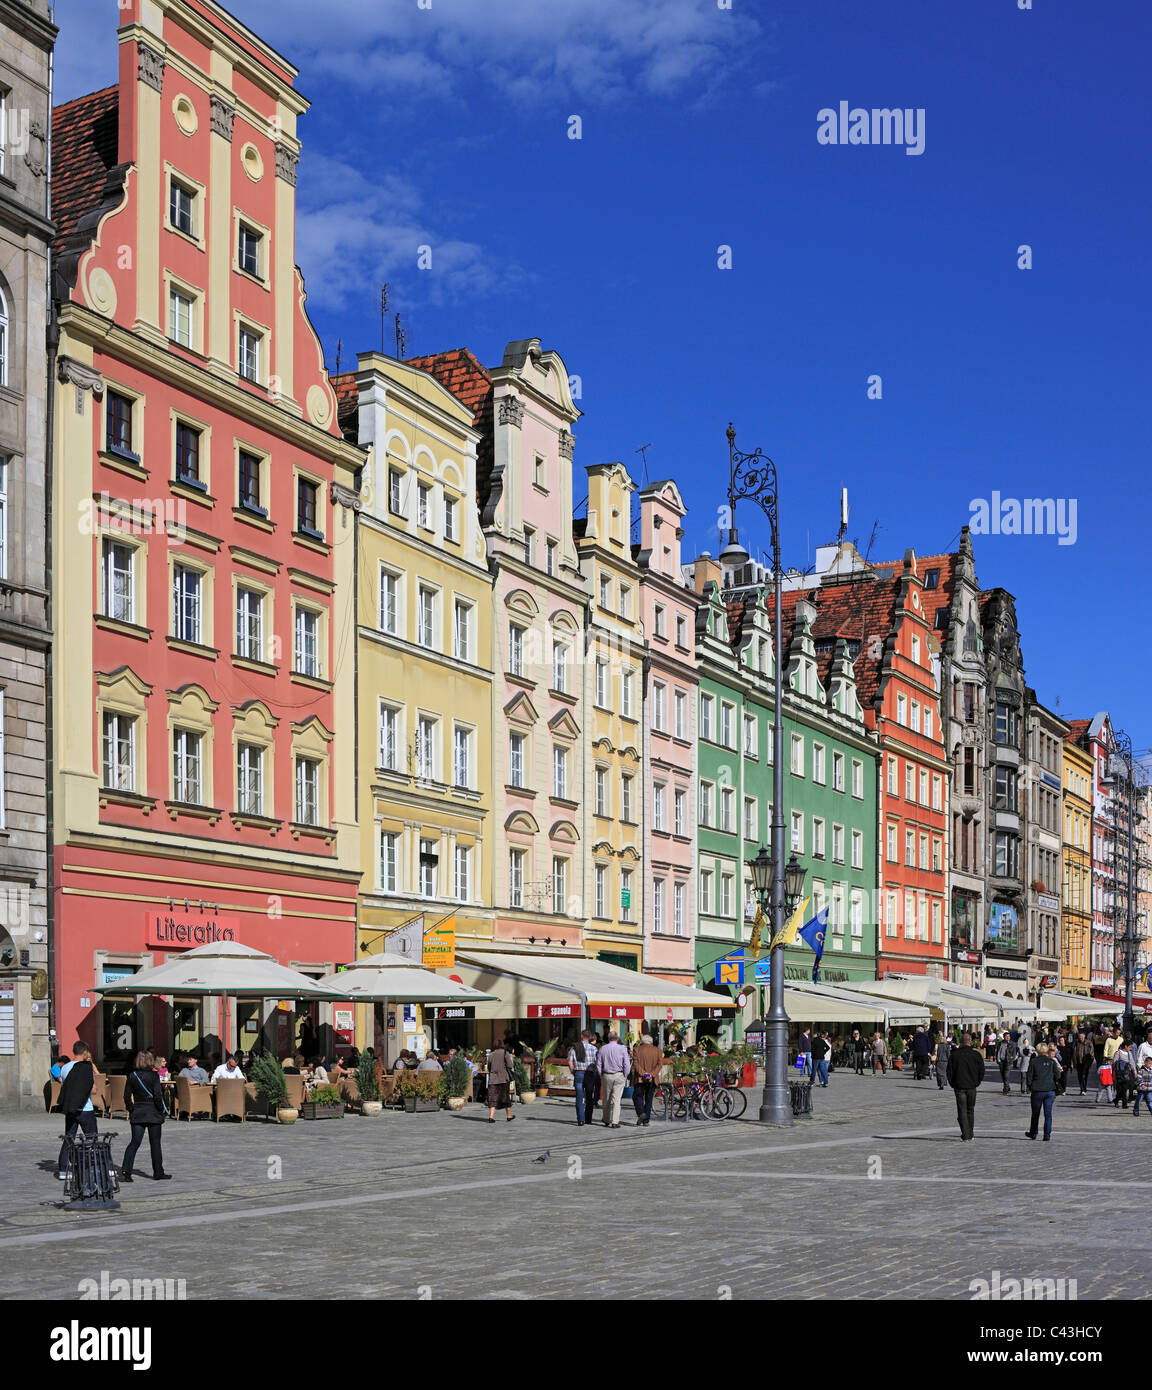 Poland, Polish, Eastern Europe, Central Europe, Europe, European, Architecture, building, house, Wroclaw, Lower - Stock Image